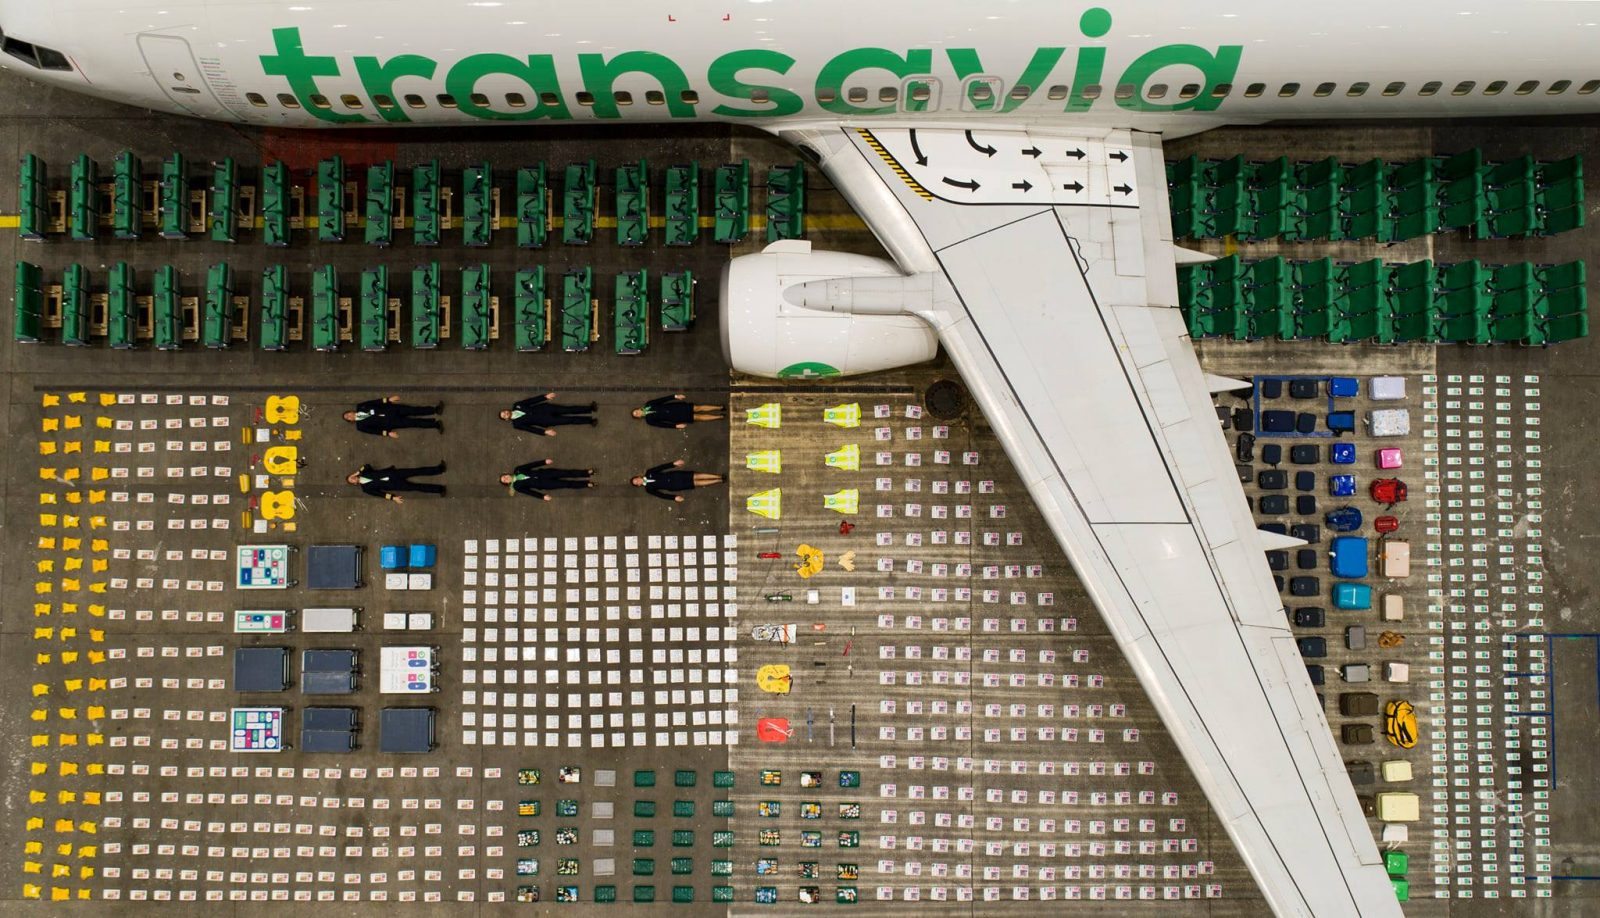 VIDEO: European Low-Cost Airline Transavia Smashes the Tetris Challenge